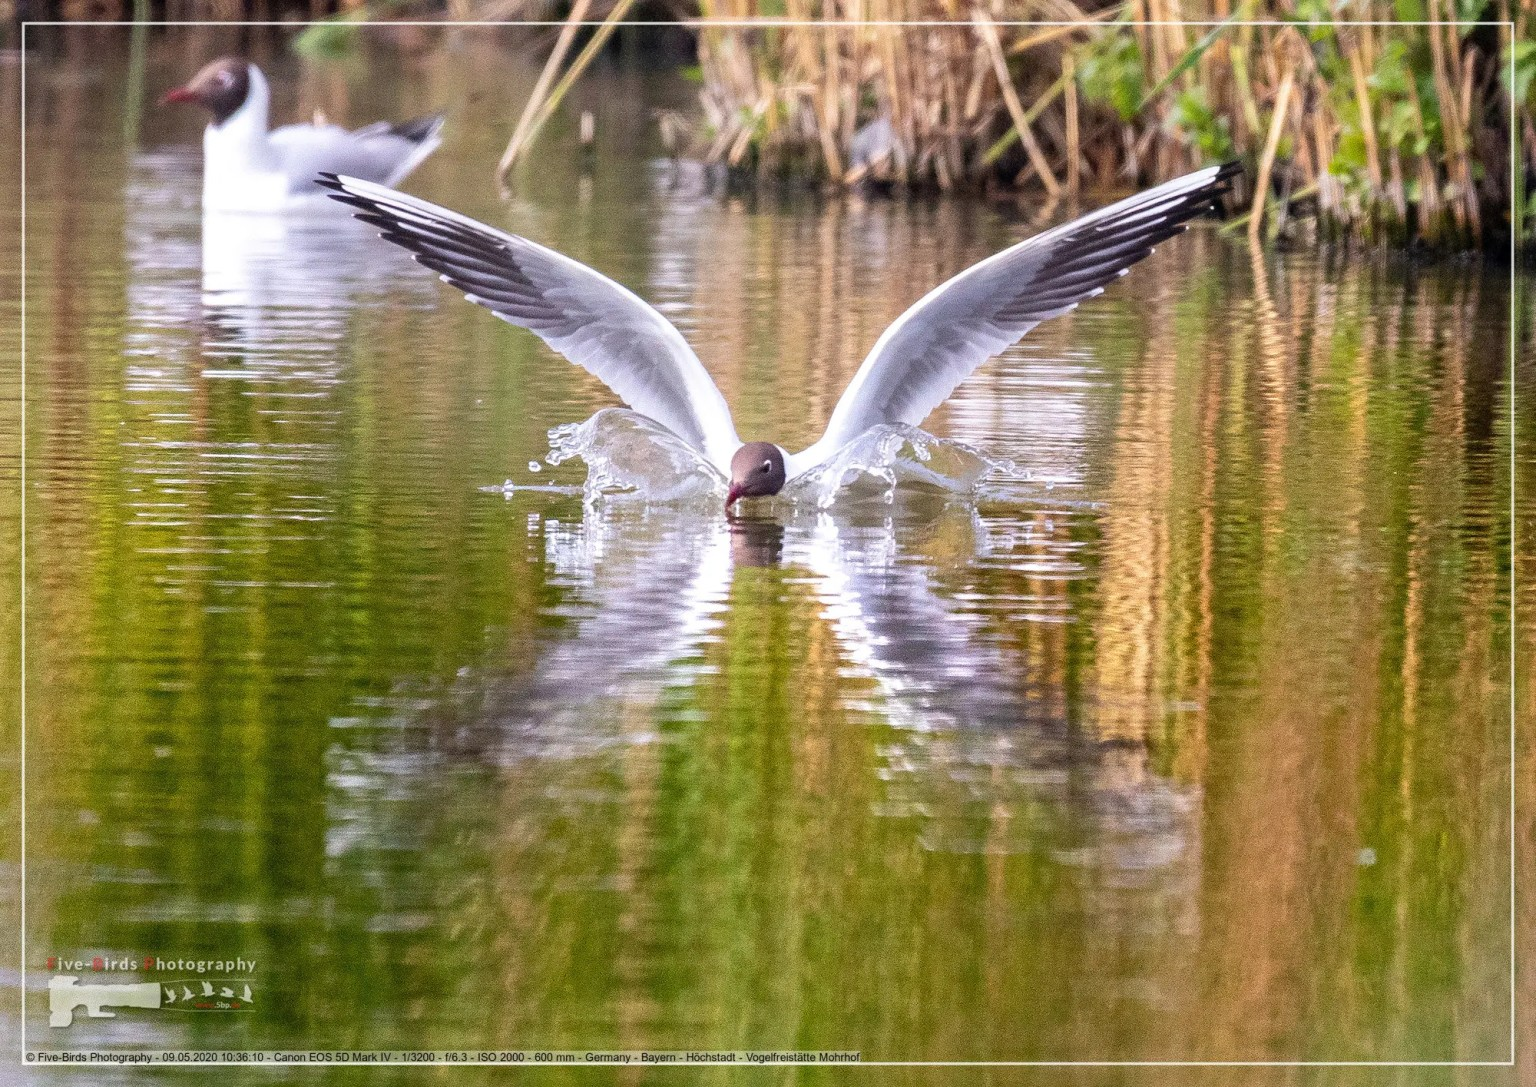 Black-headed gull in a bird sanctuary in southern Germany